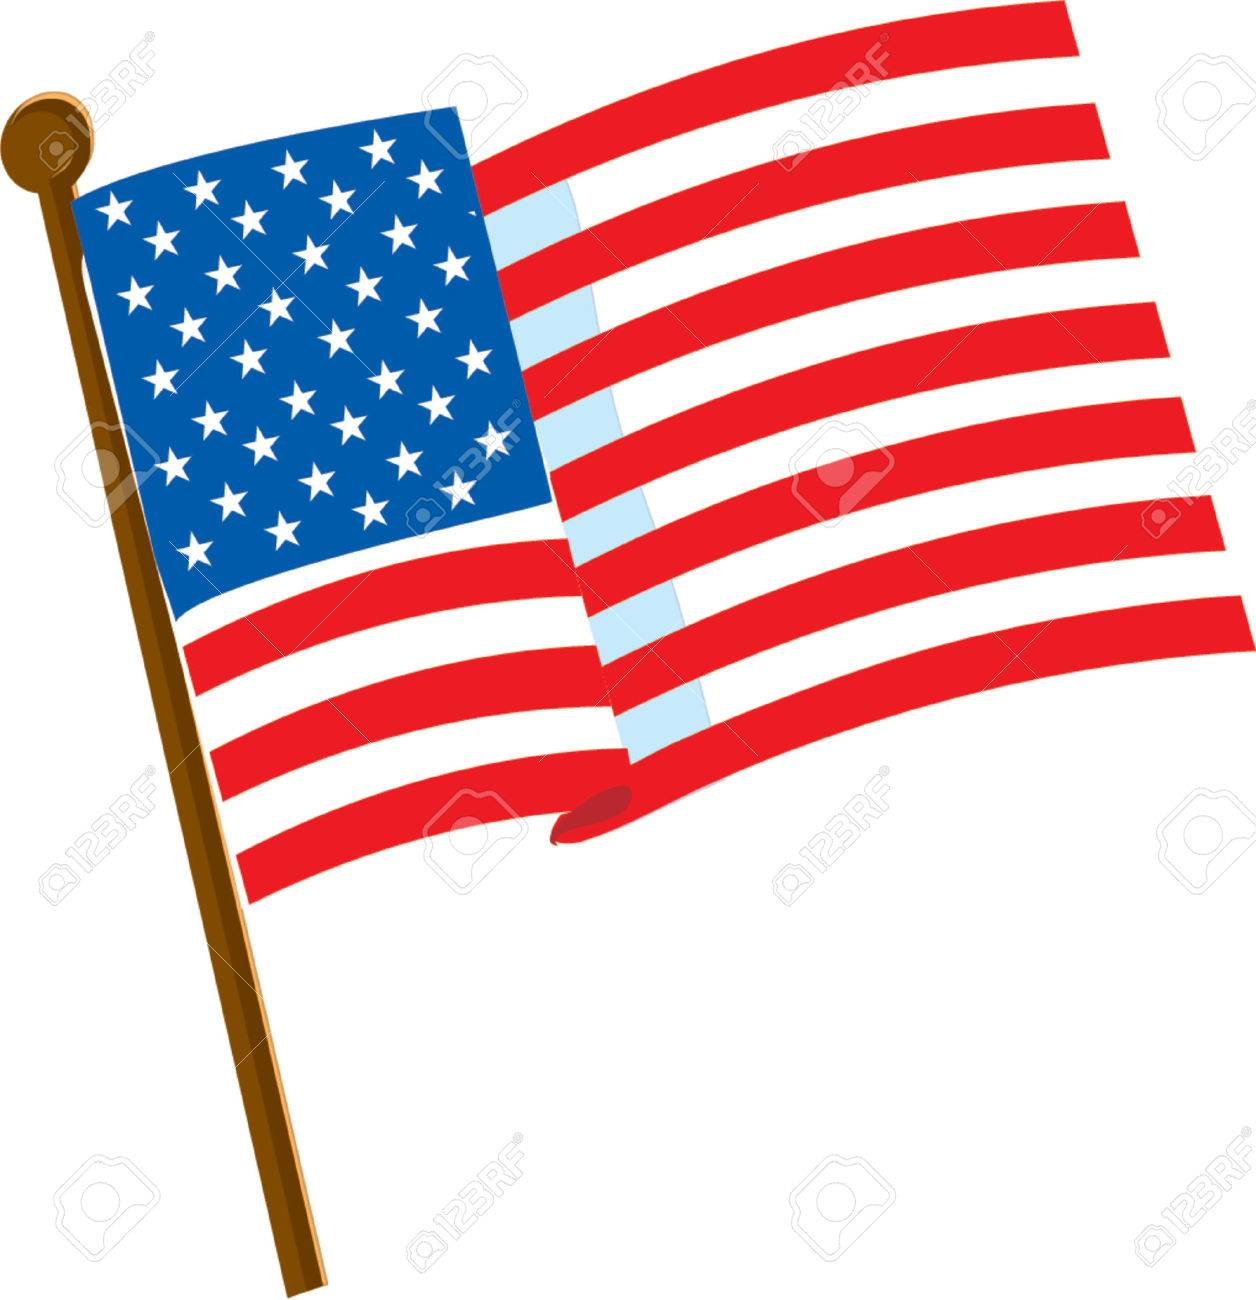 american flag on a white background with 50 stars royalty free rh 123rf com American Flag Vertical Vector Clip Art us flag clipart vector